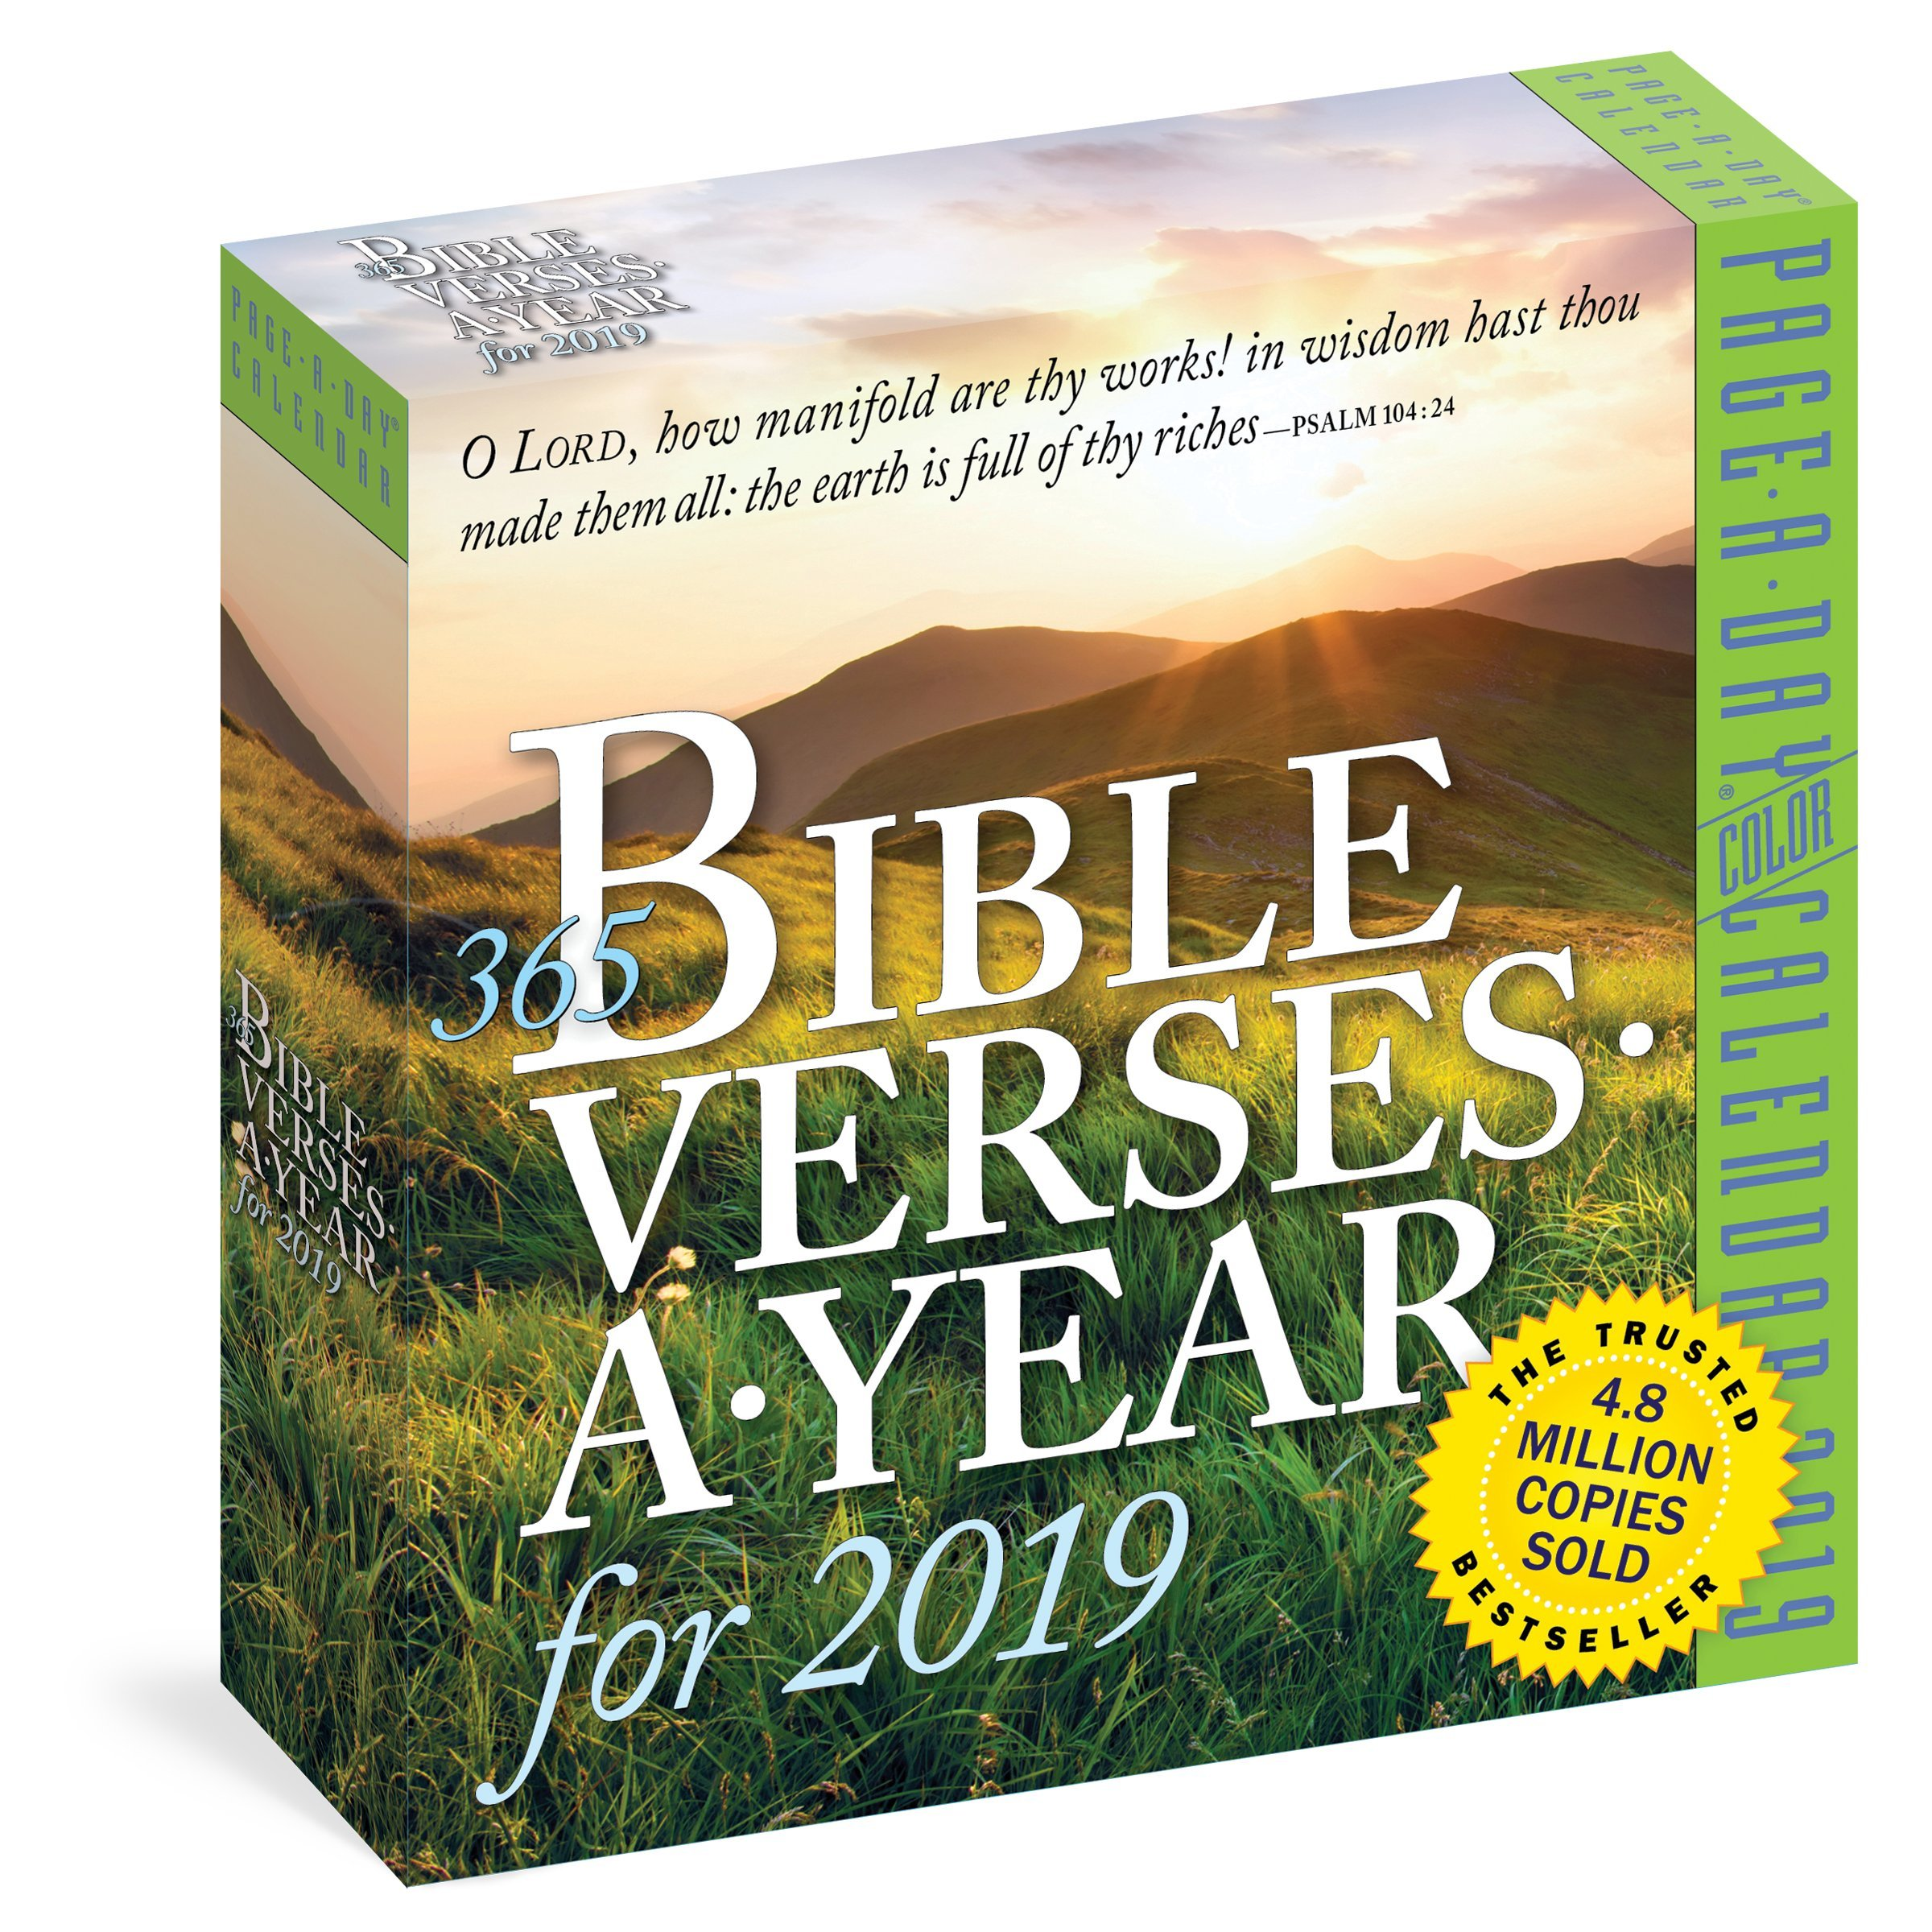 365 Bible Verses A Year 2019 Calendar Workman 9781523503421